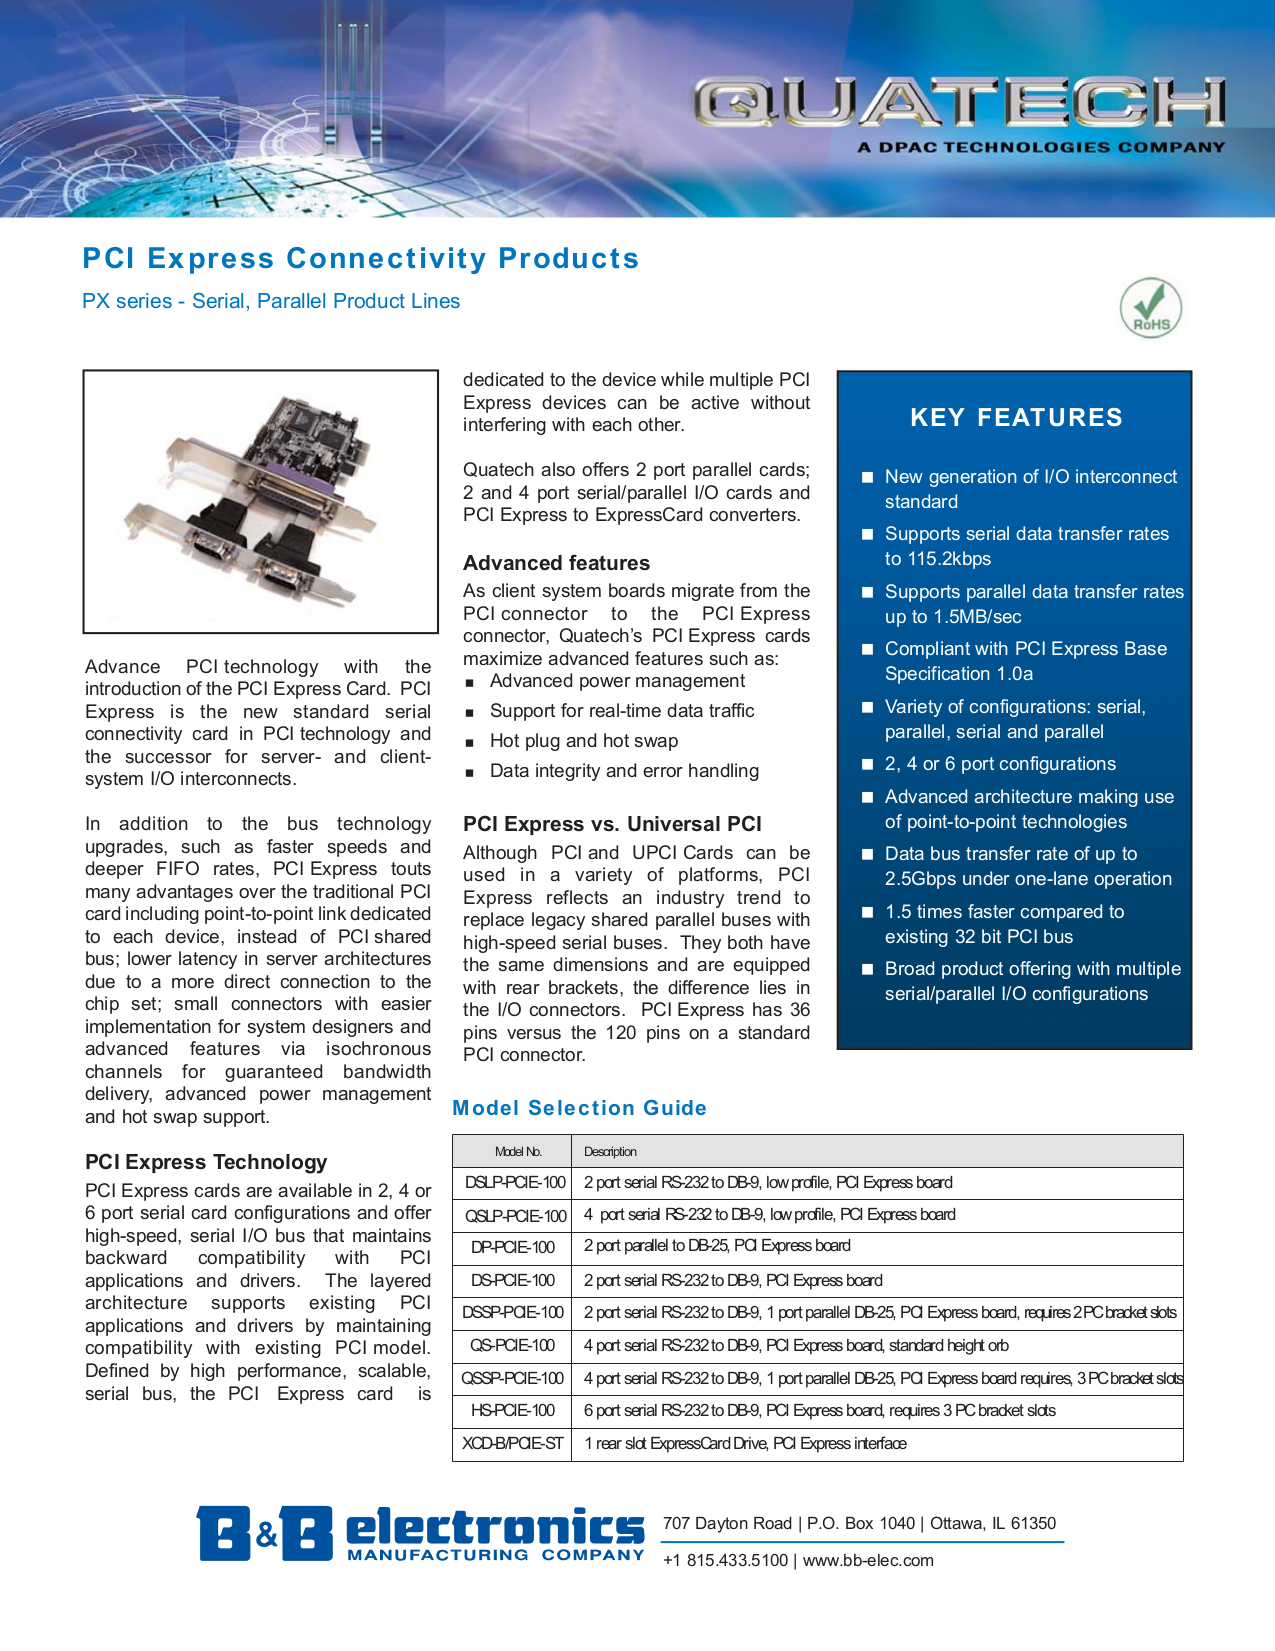 pdf for Quatech Other DS-PCIE-100 PCI Express Devices manual